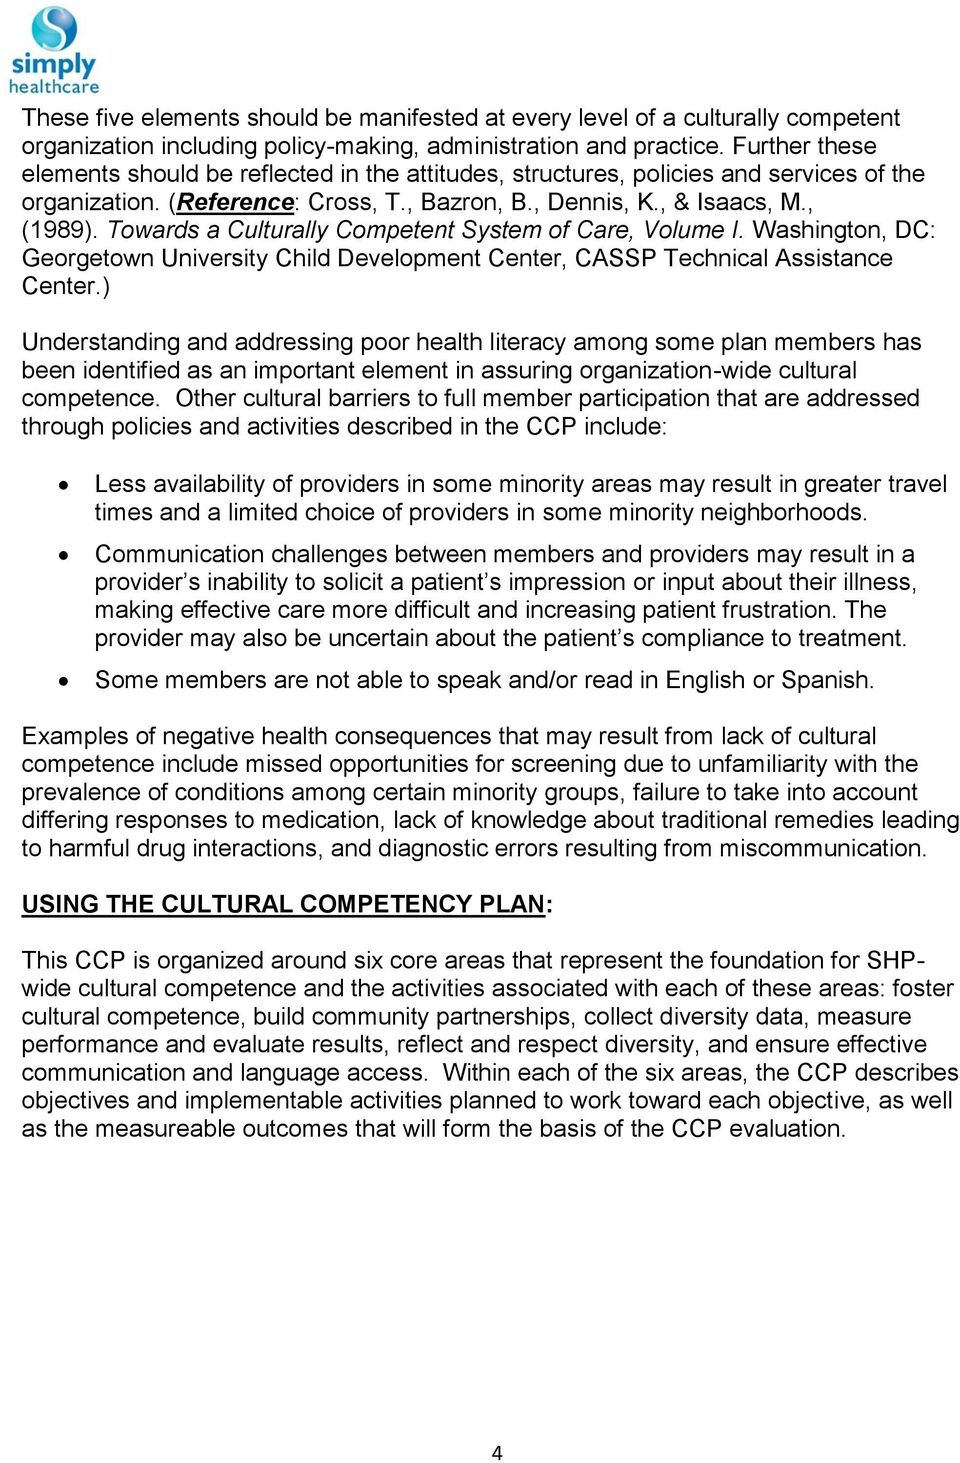 Towards a Culturally Competent System of Care, Volume I. Washington, DC: Georgetown University Child Development Center, CASSP Technical Assistance Center.